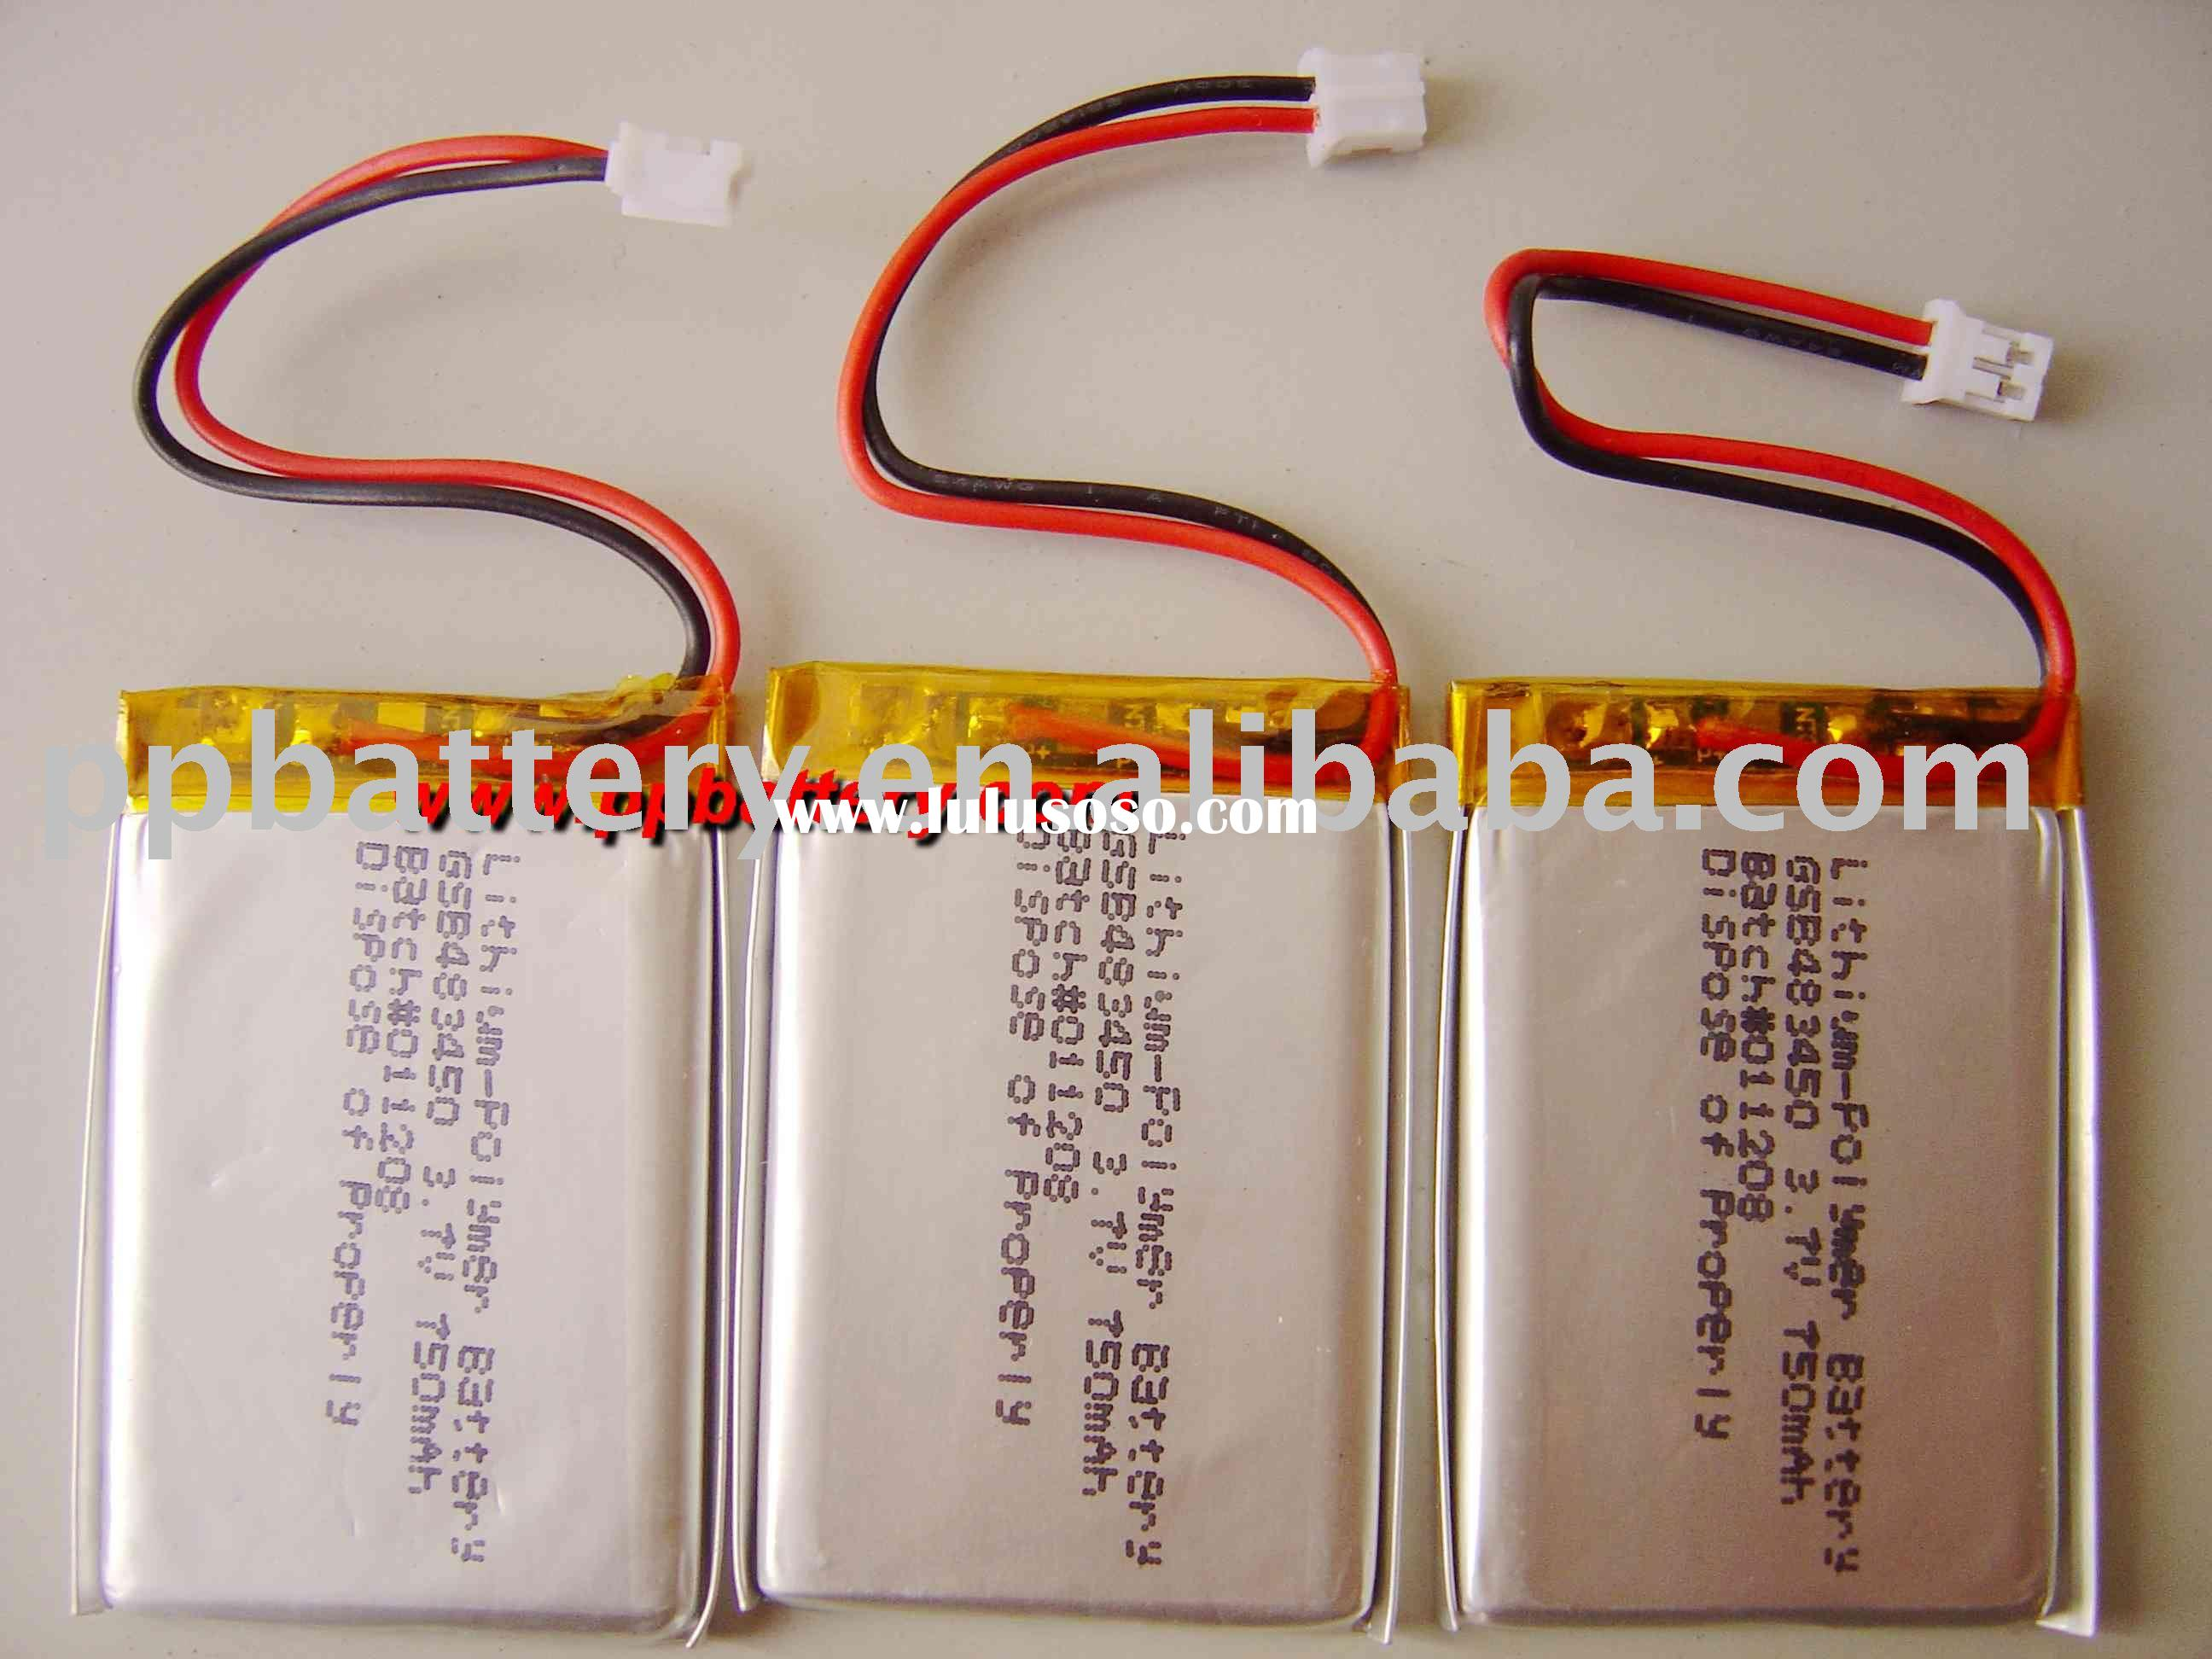 rechargeable lithium polymer battery 483450 750mAh 3.7V